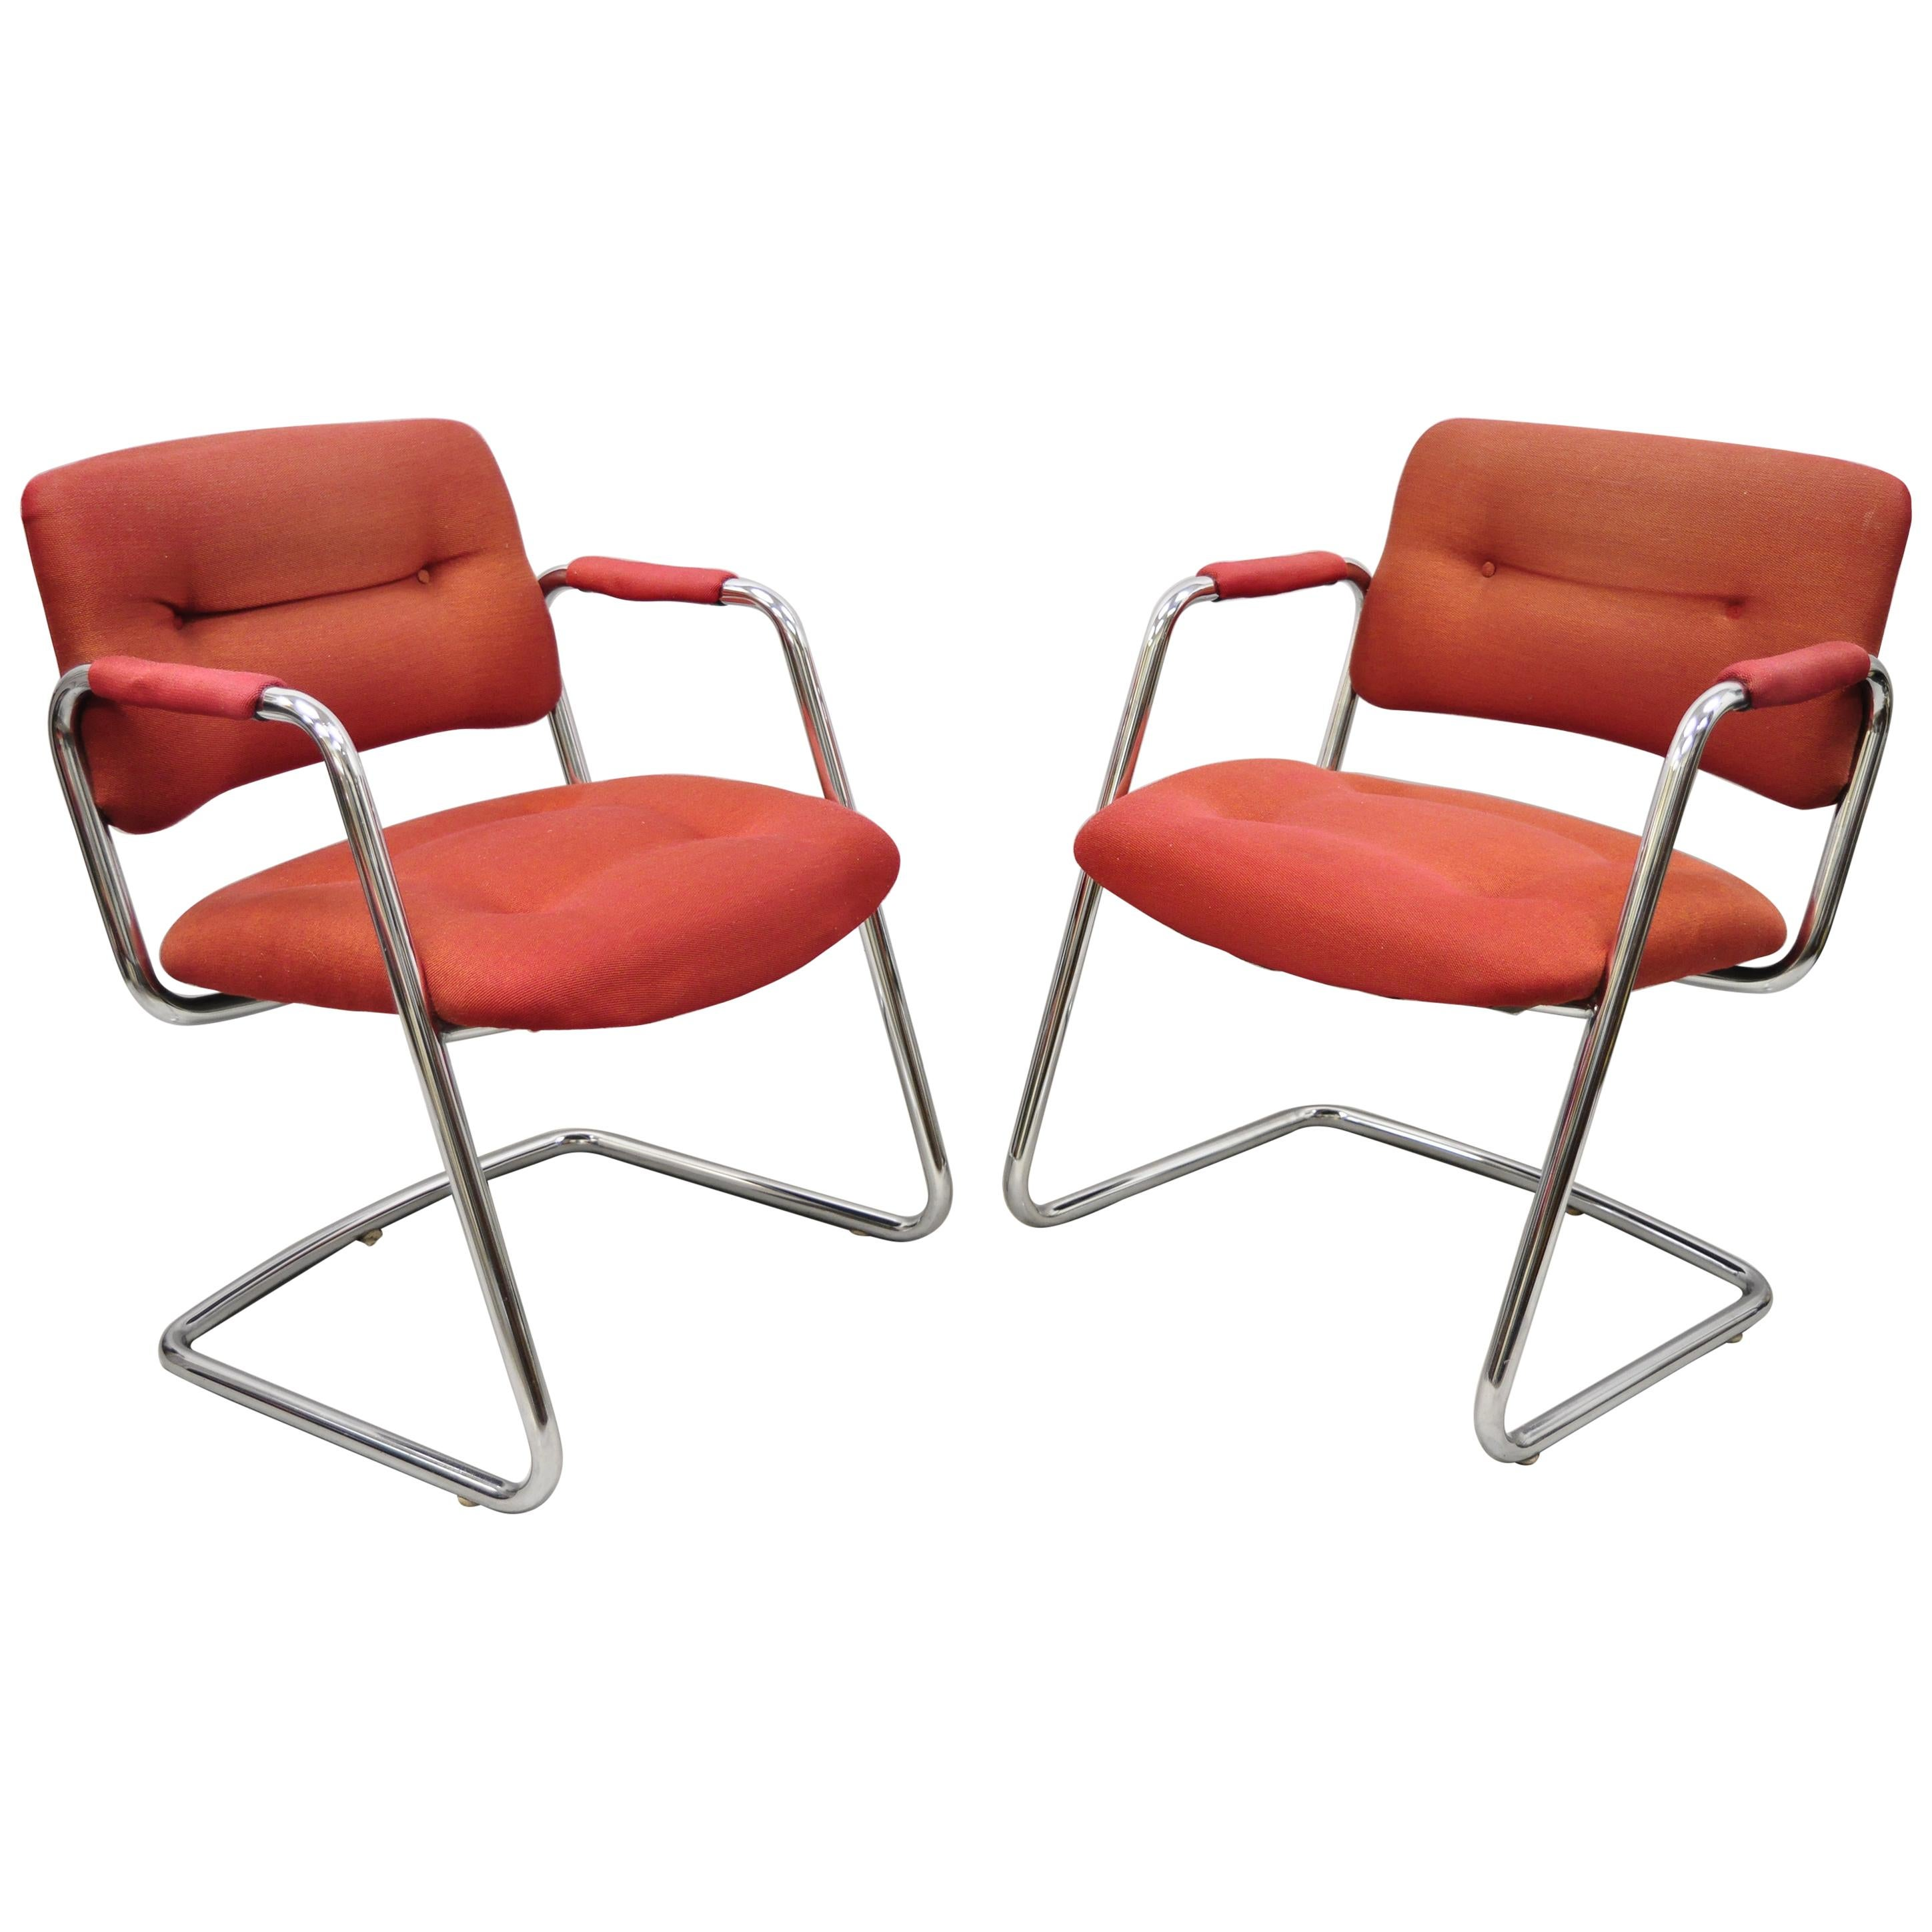 Steelcase Mid-Century Modern Tubular Chrome Red Upholstered Arm Lounge Chairs A